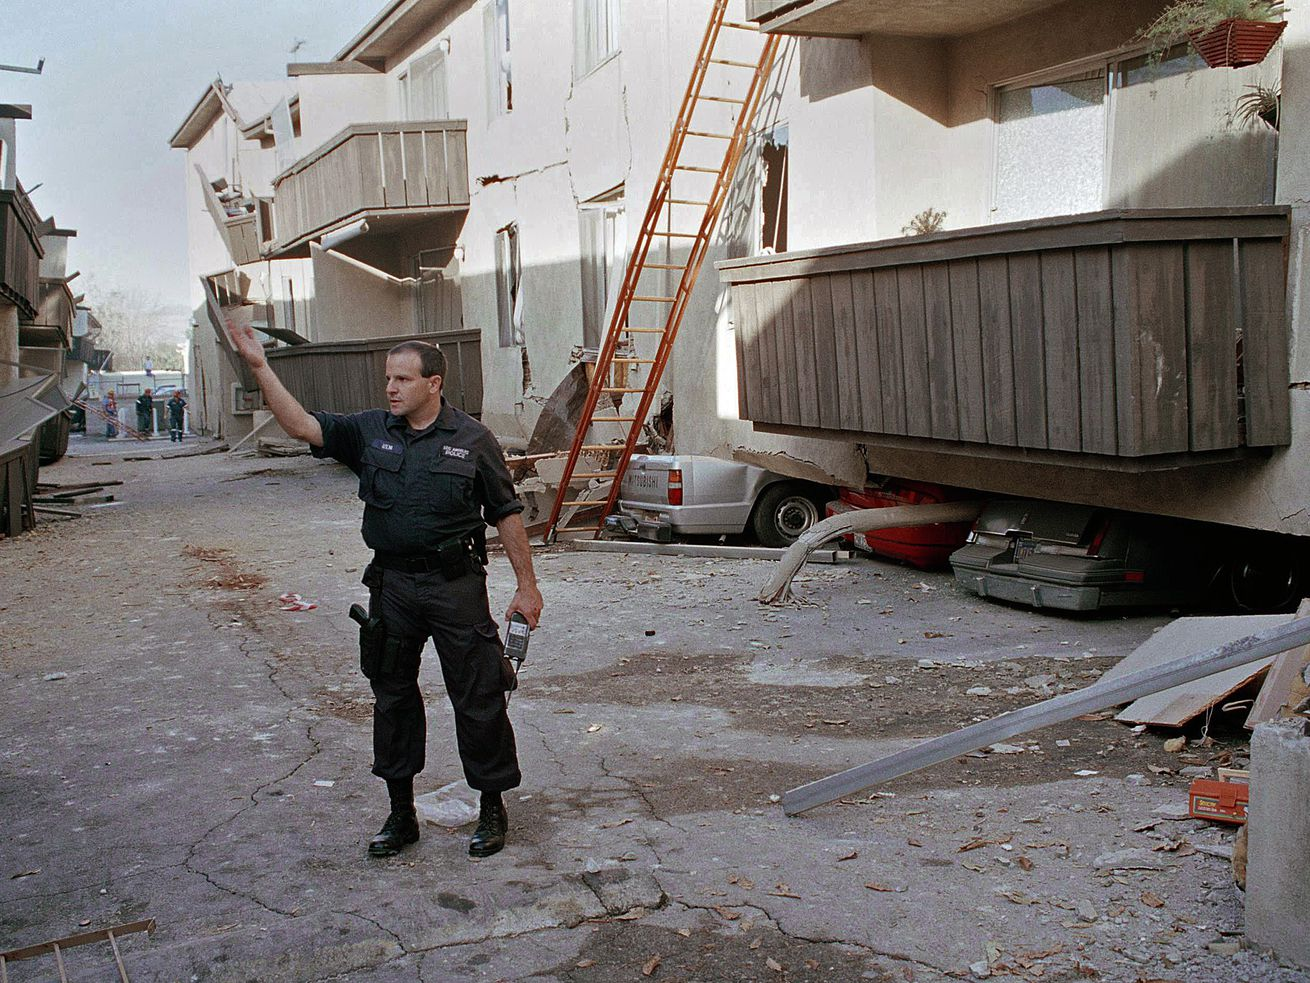 In this Jan. 17, 1994 file photo, a Los Angeles police officer stands in front of the Northridge Meadows Apartment building, after the upper floors of the structure collapsed onto the open garages and first story, killing 16 people.